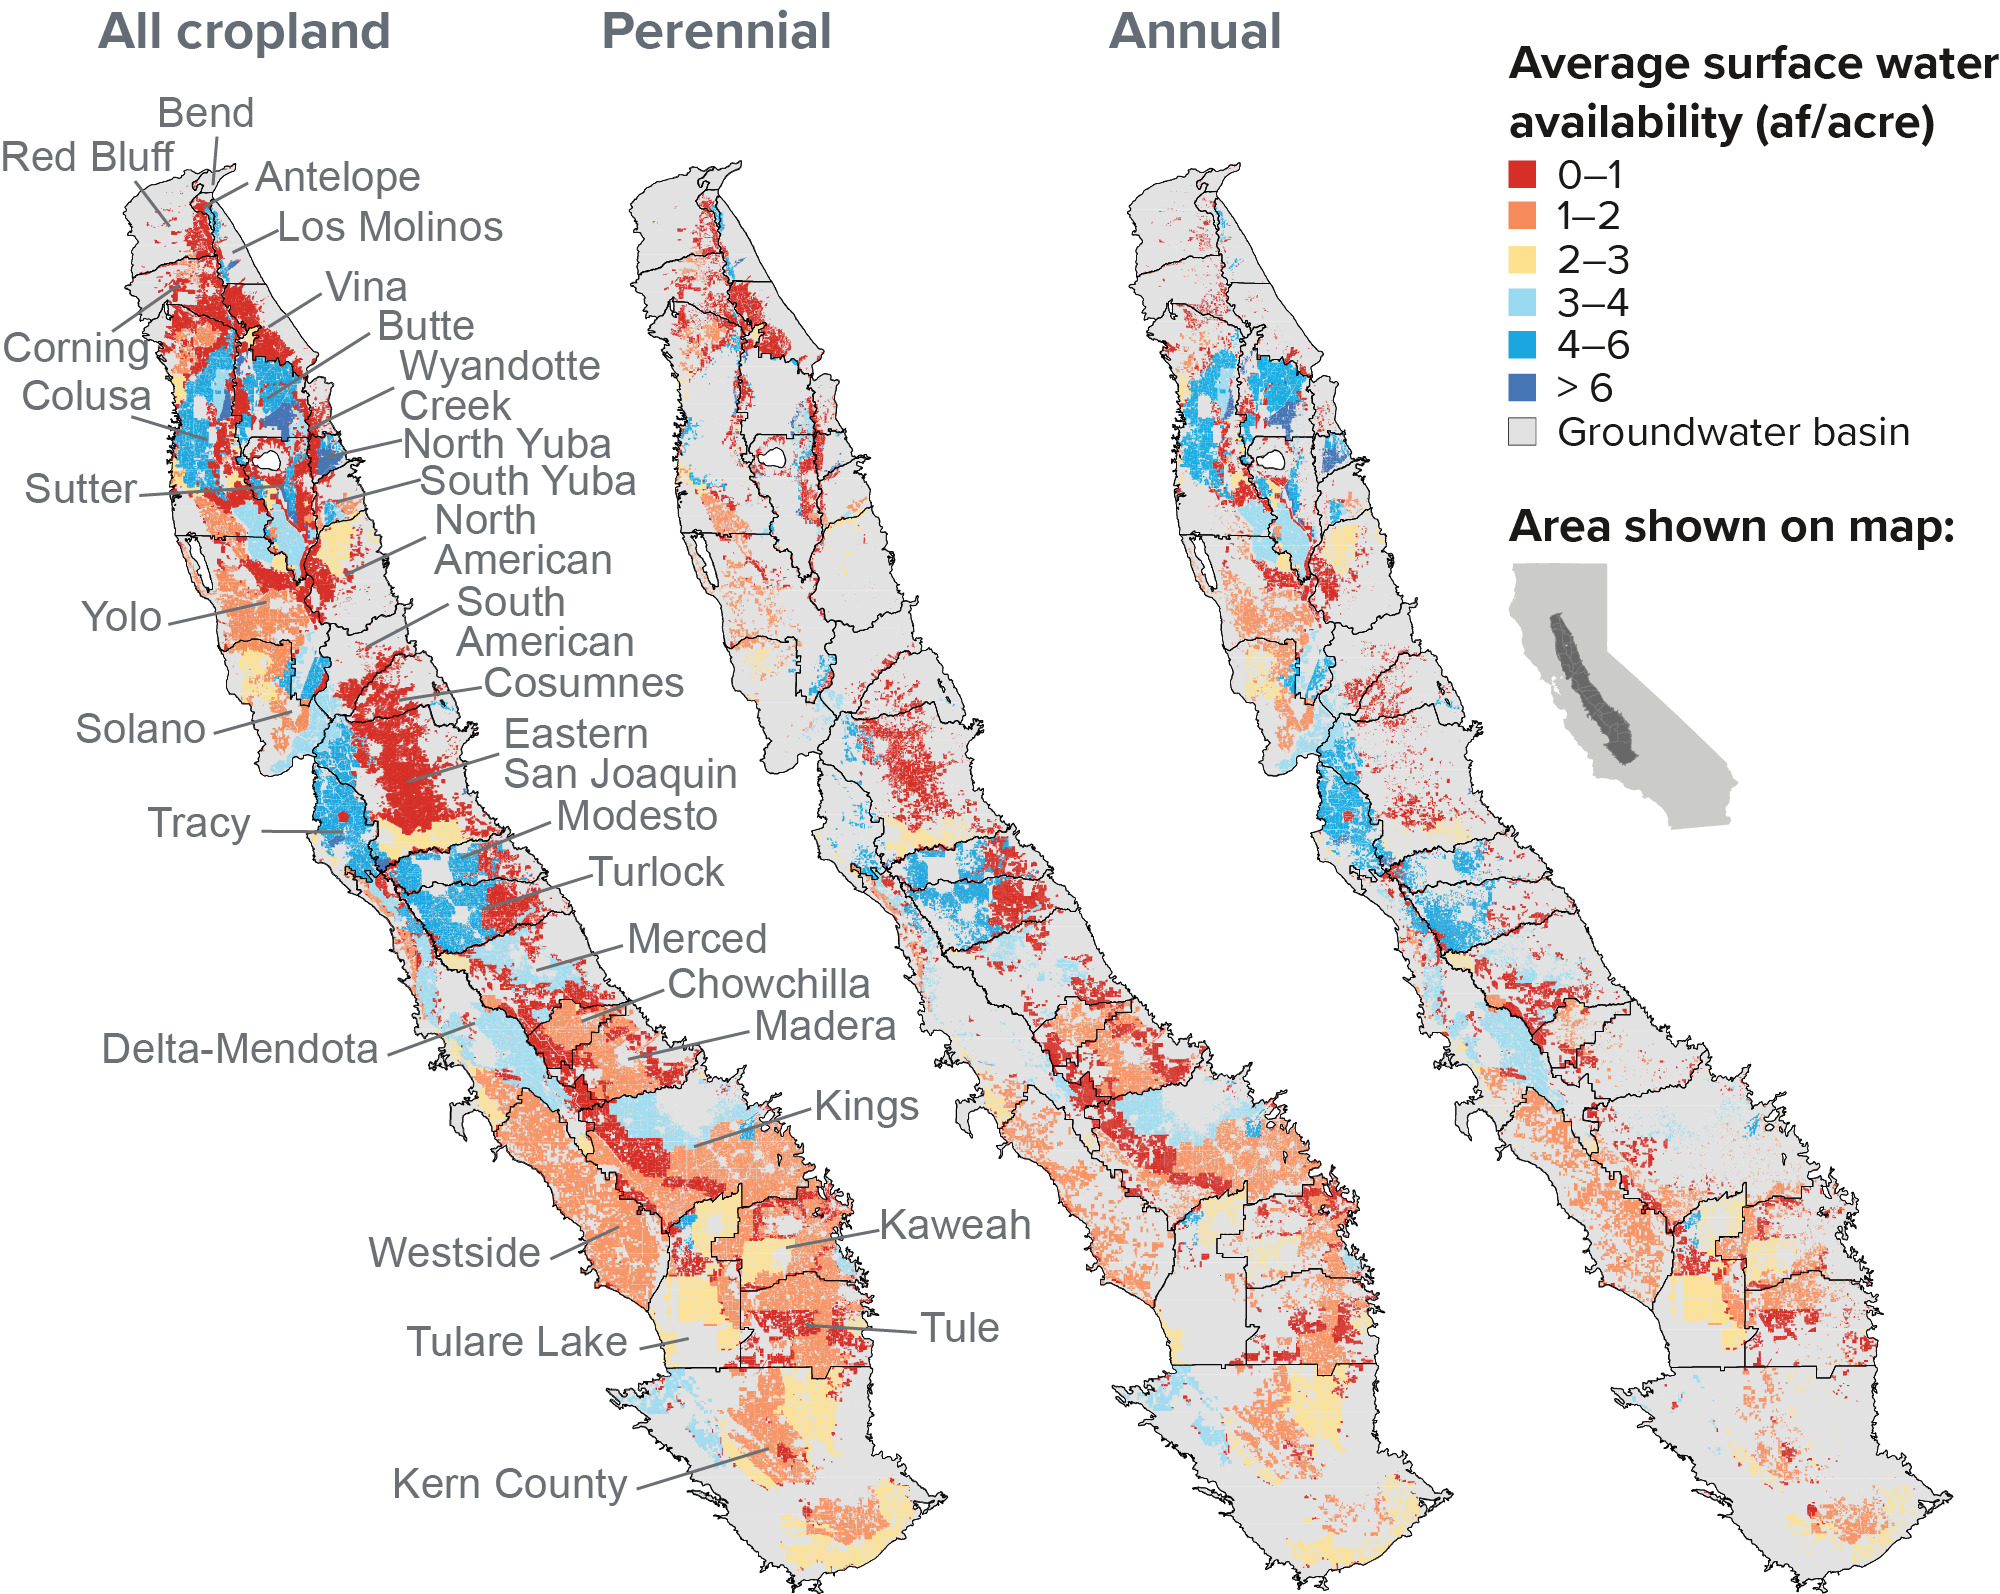 figure - Surface water for farming varies within and across Central Valley groundwater basins, and perennial crops rely more heavily on groundwater